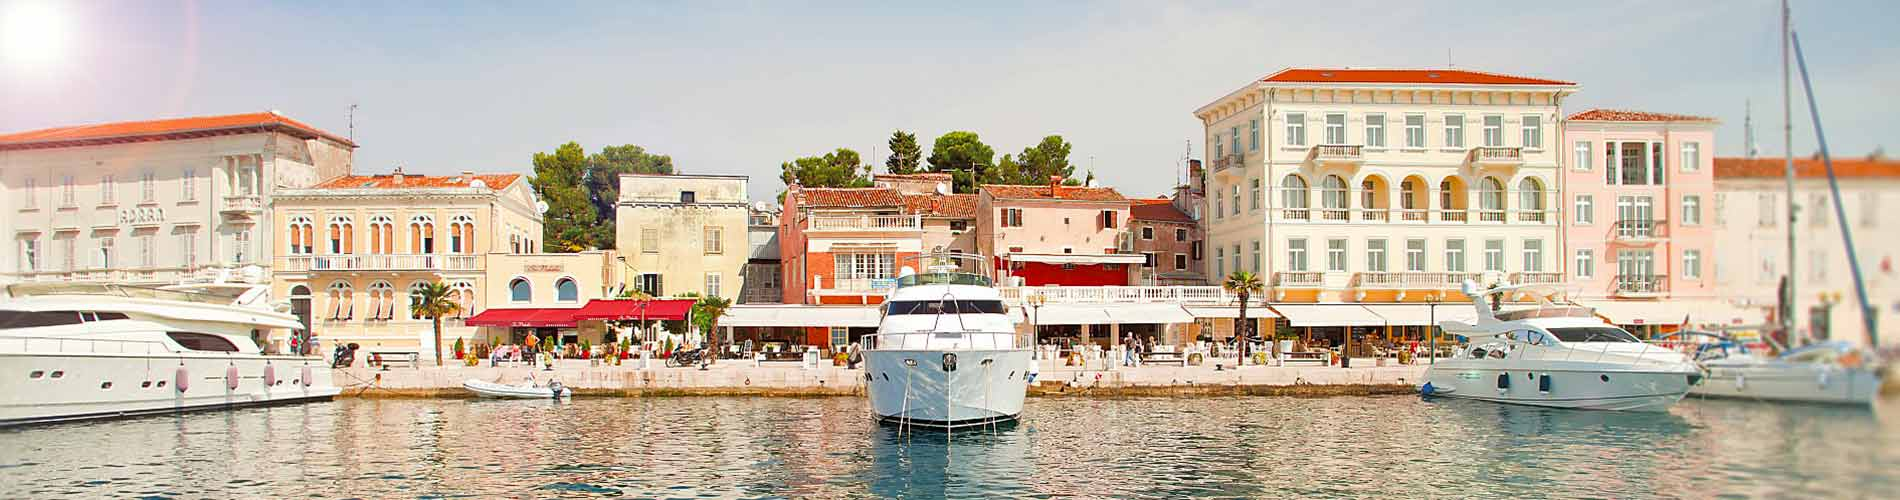 Croatia, Porec. Panoramic view of the city.jpg